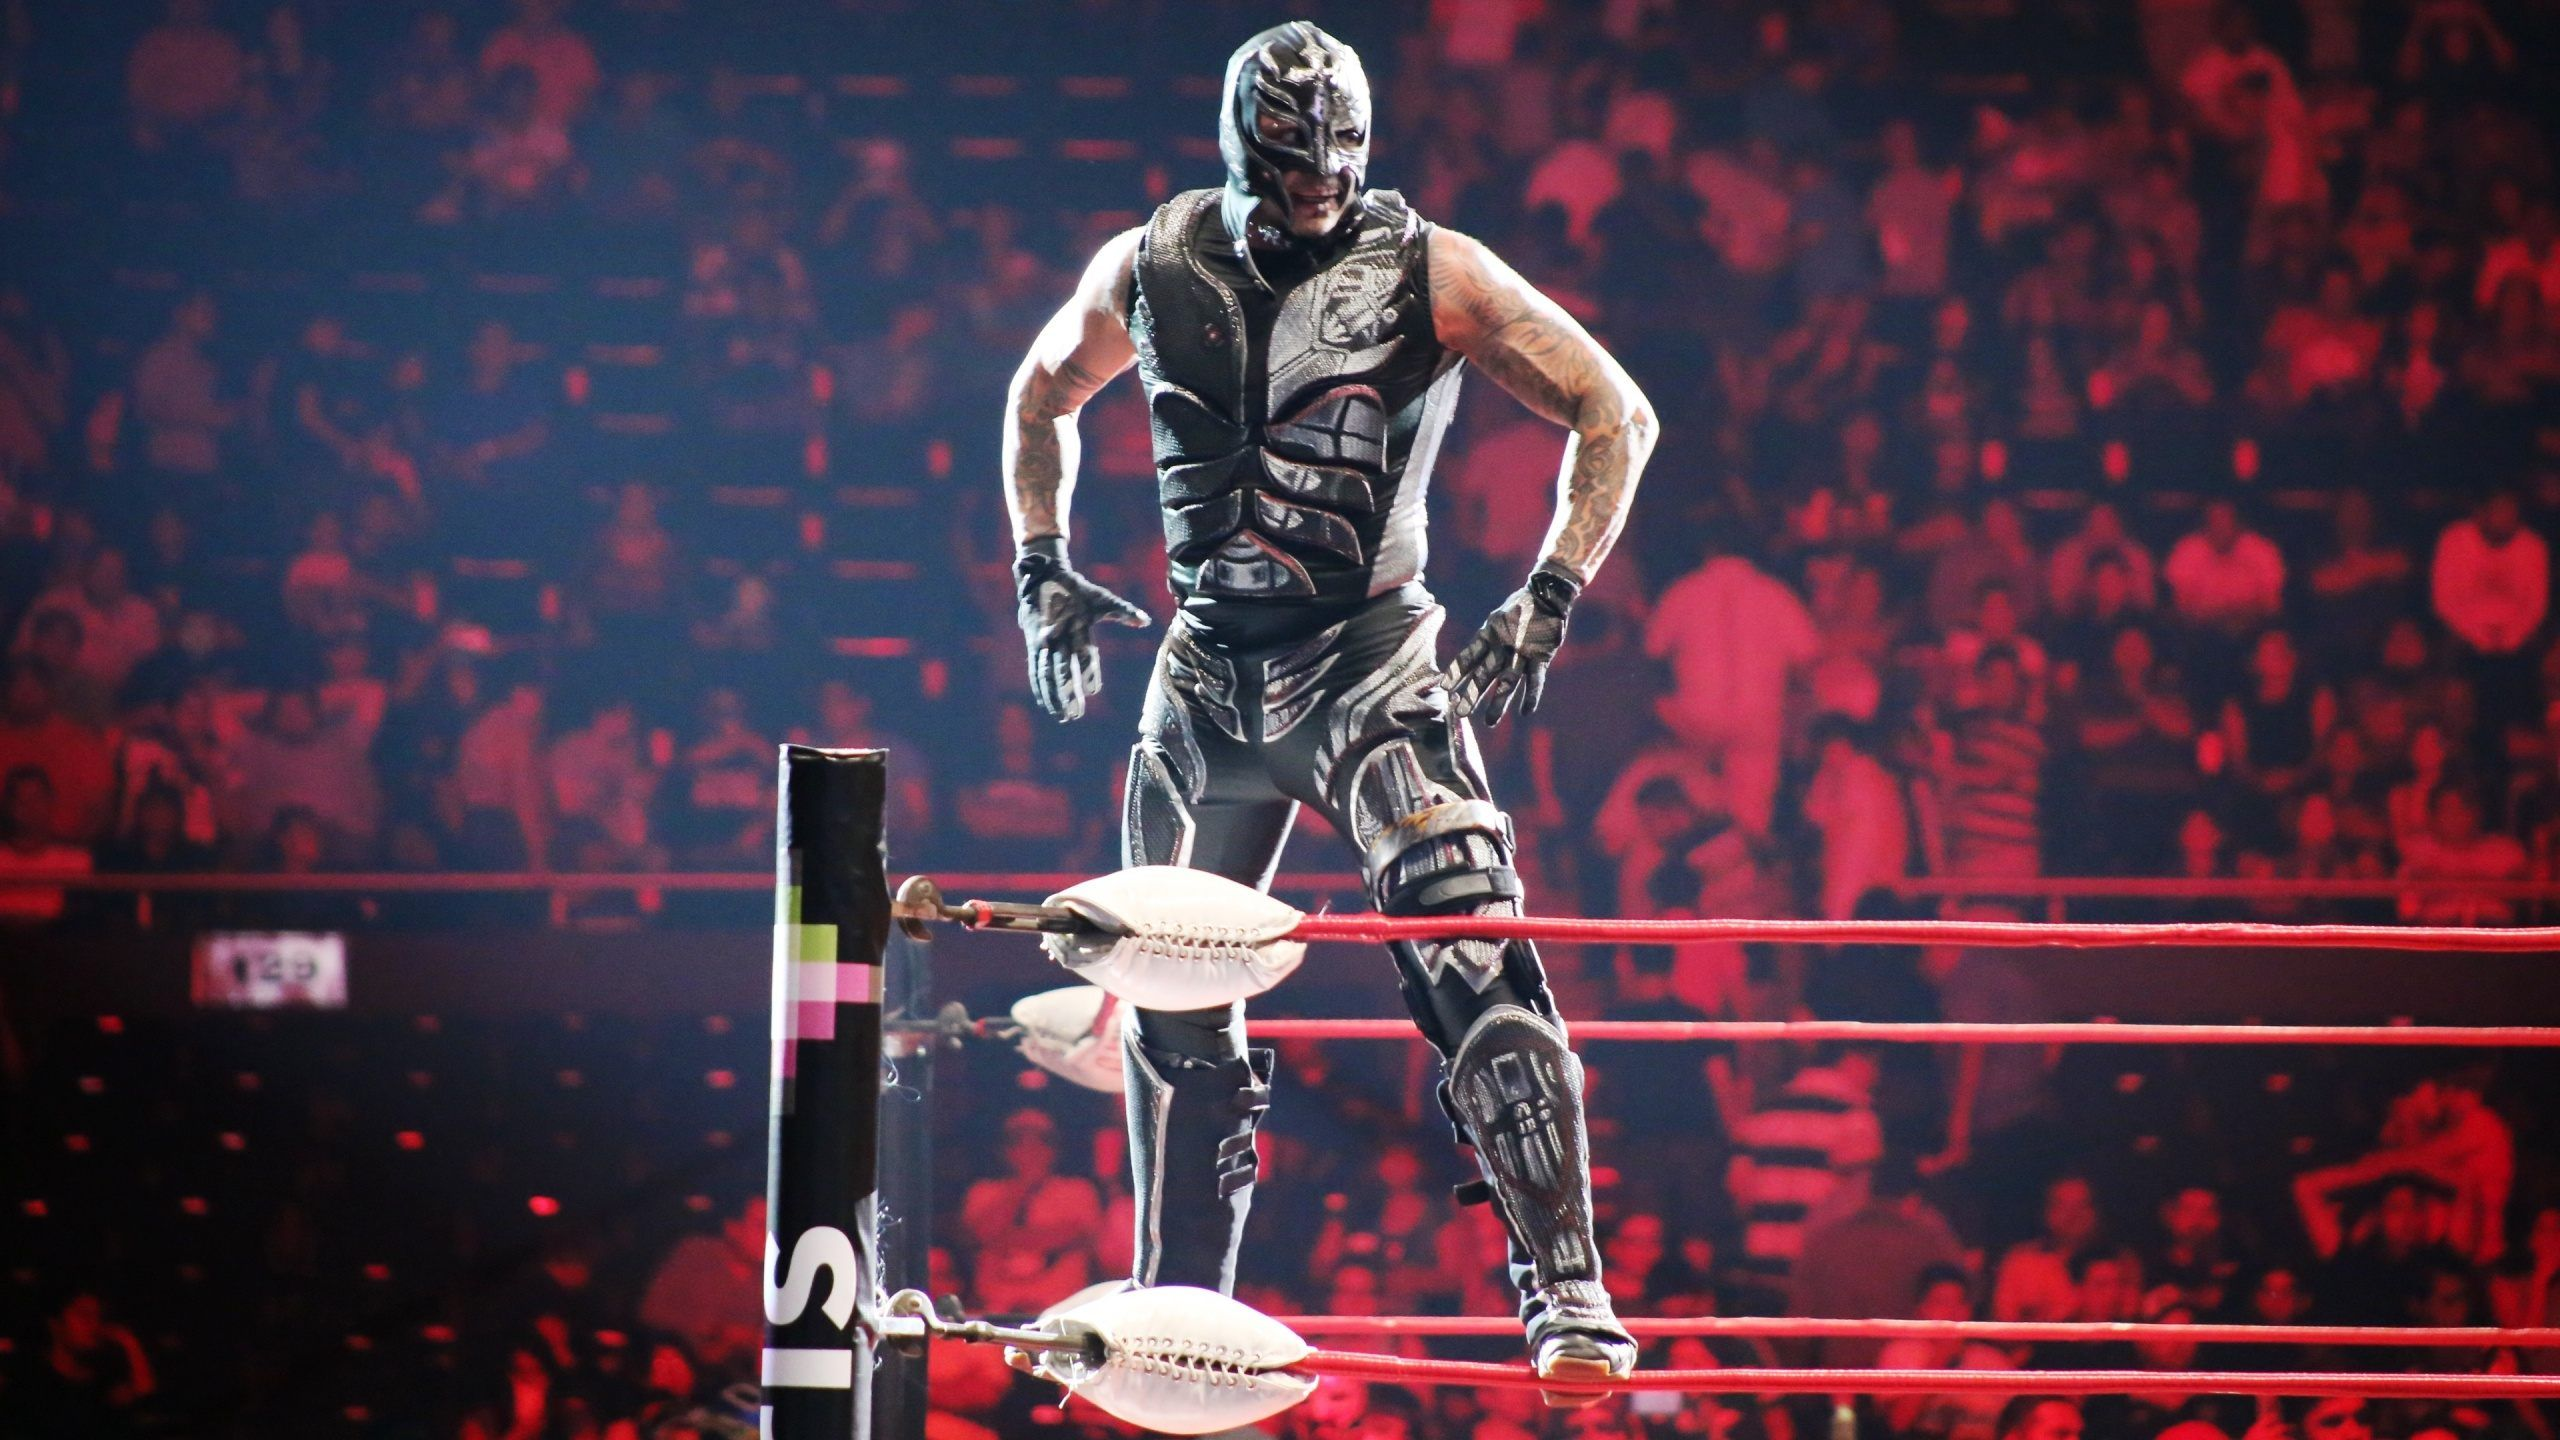 Rey Mysterio HD Images Get Free top quality Rey Mysterio